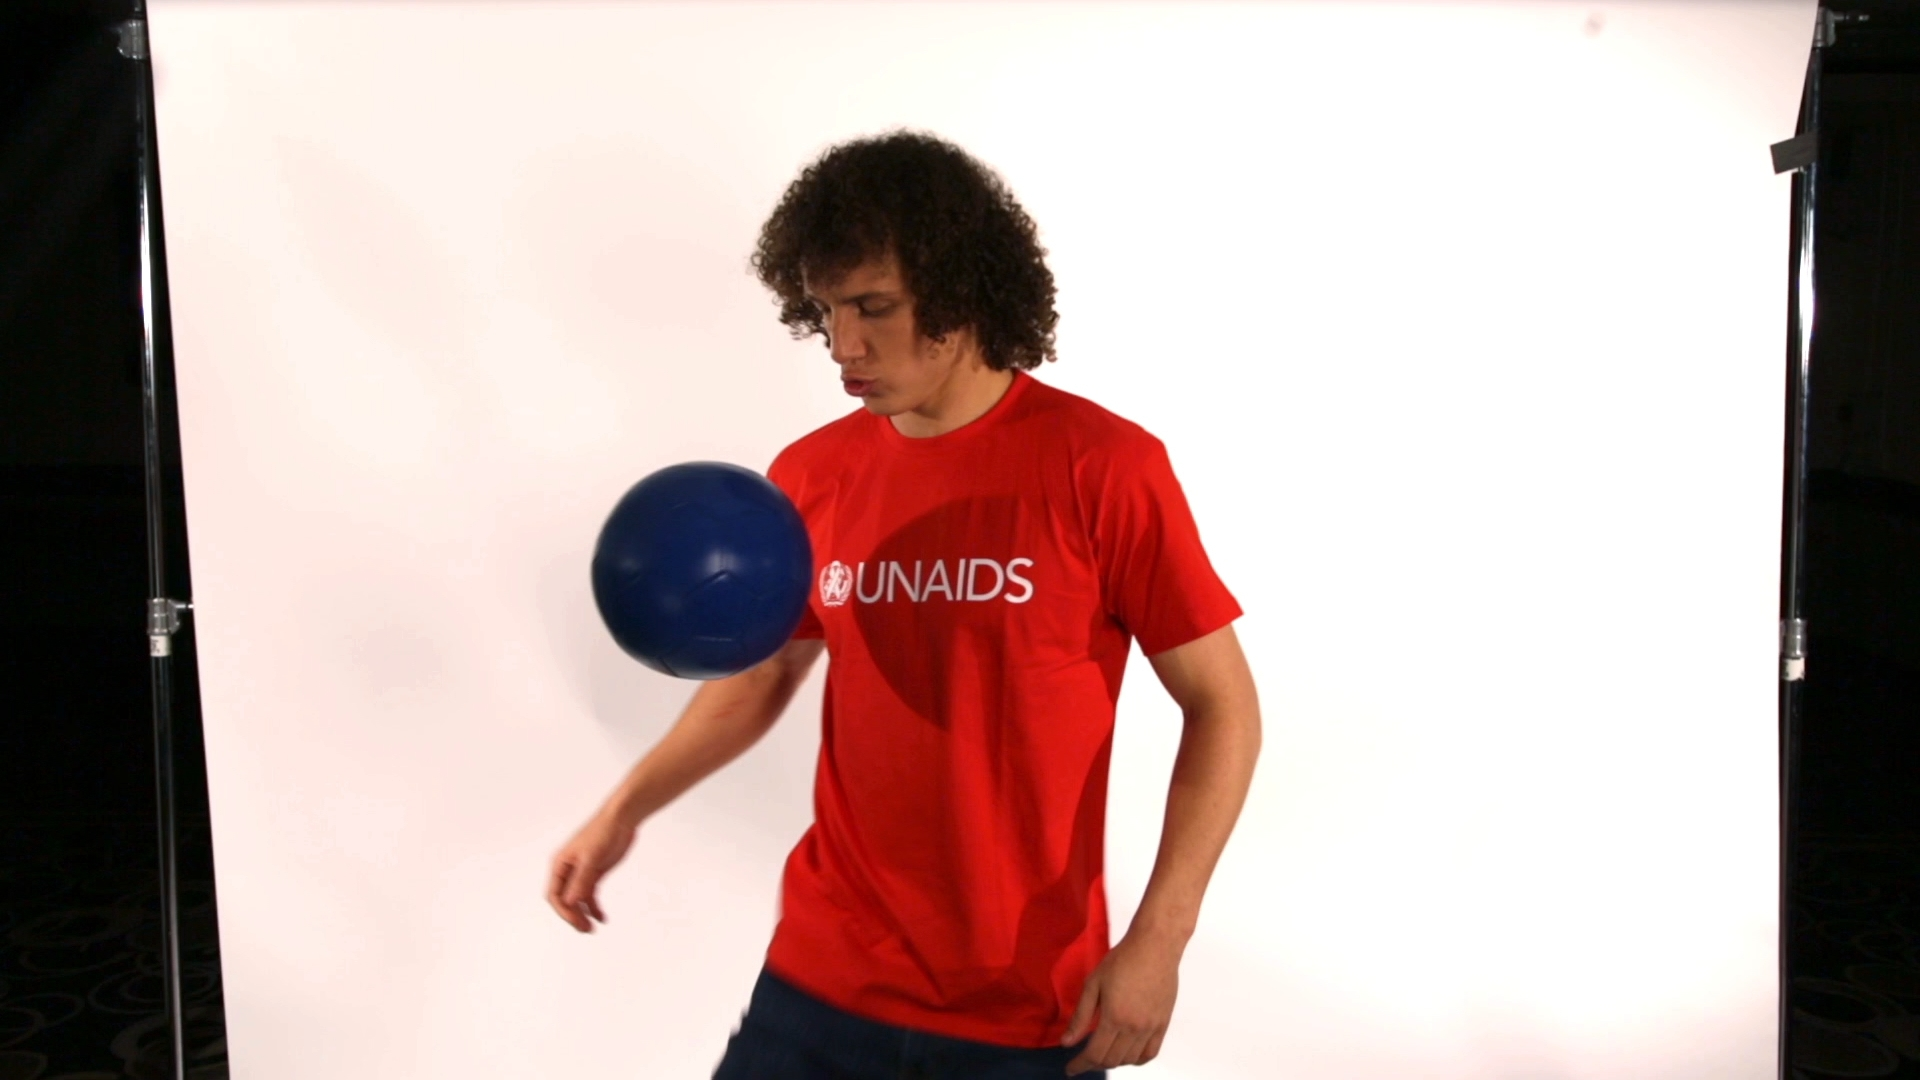 Selected frame from video story UNAIDS / DAVID LUIZ